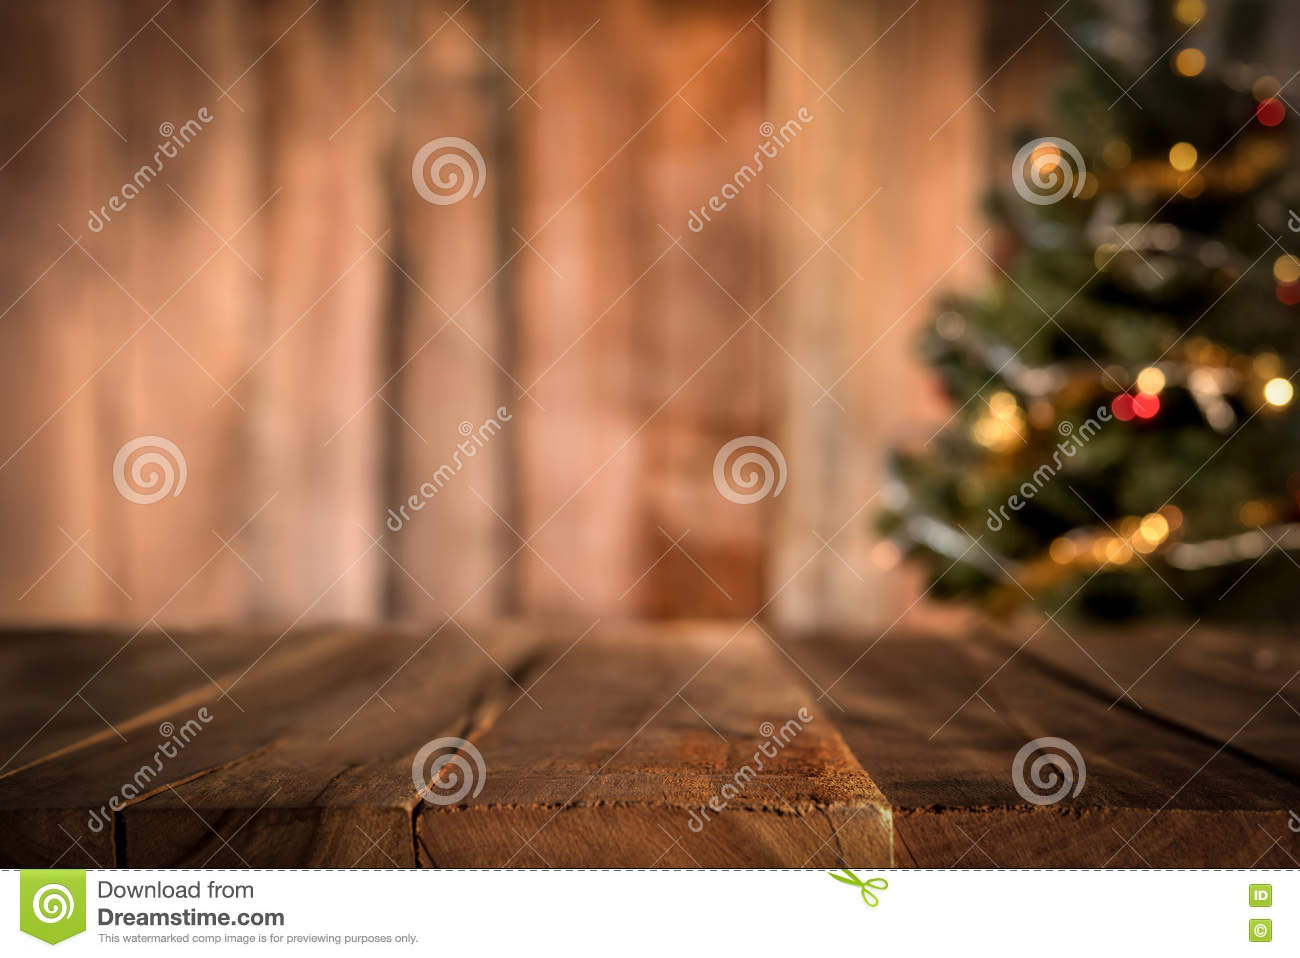 Old wood table top with blur Christmas tree in background